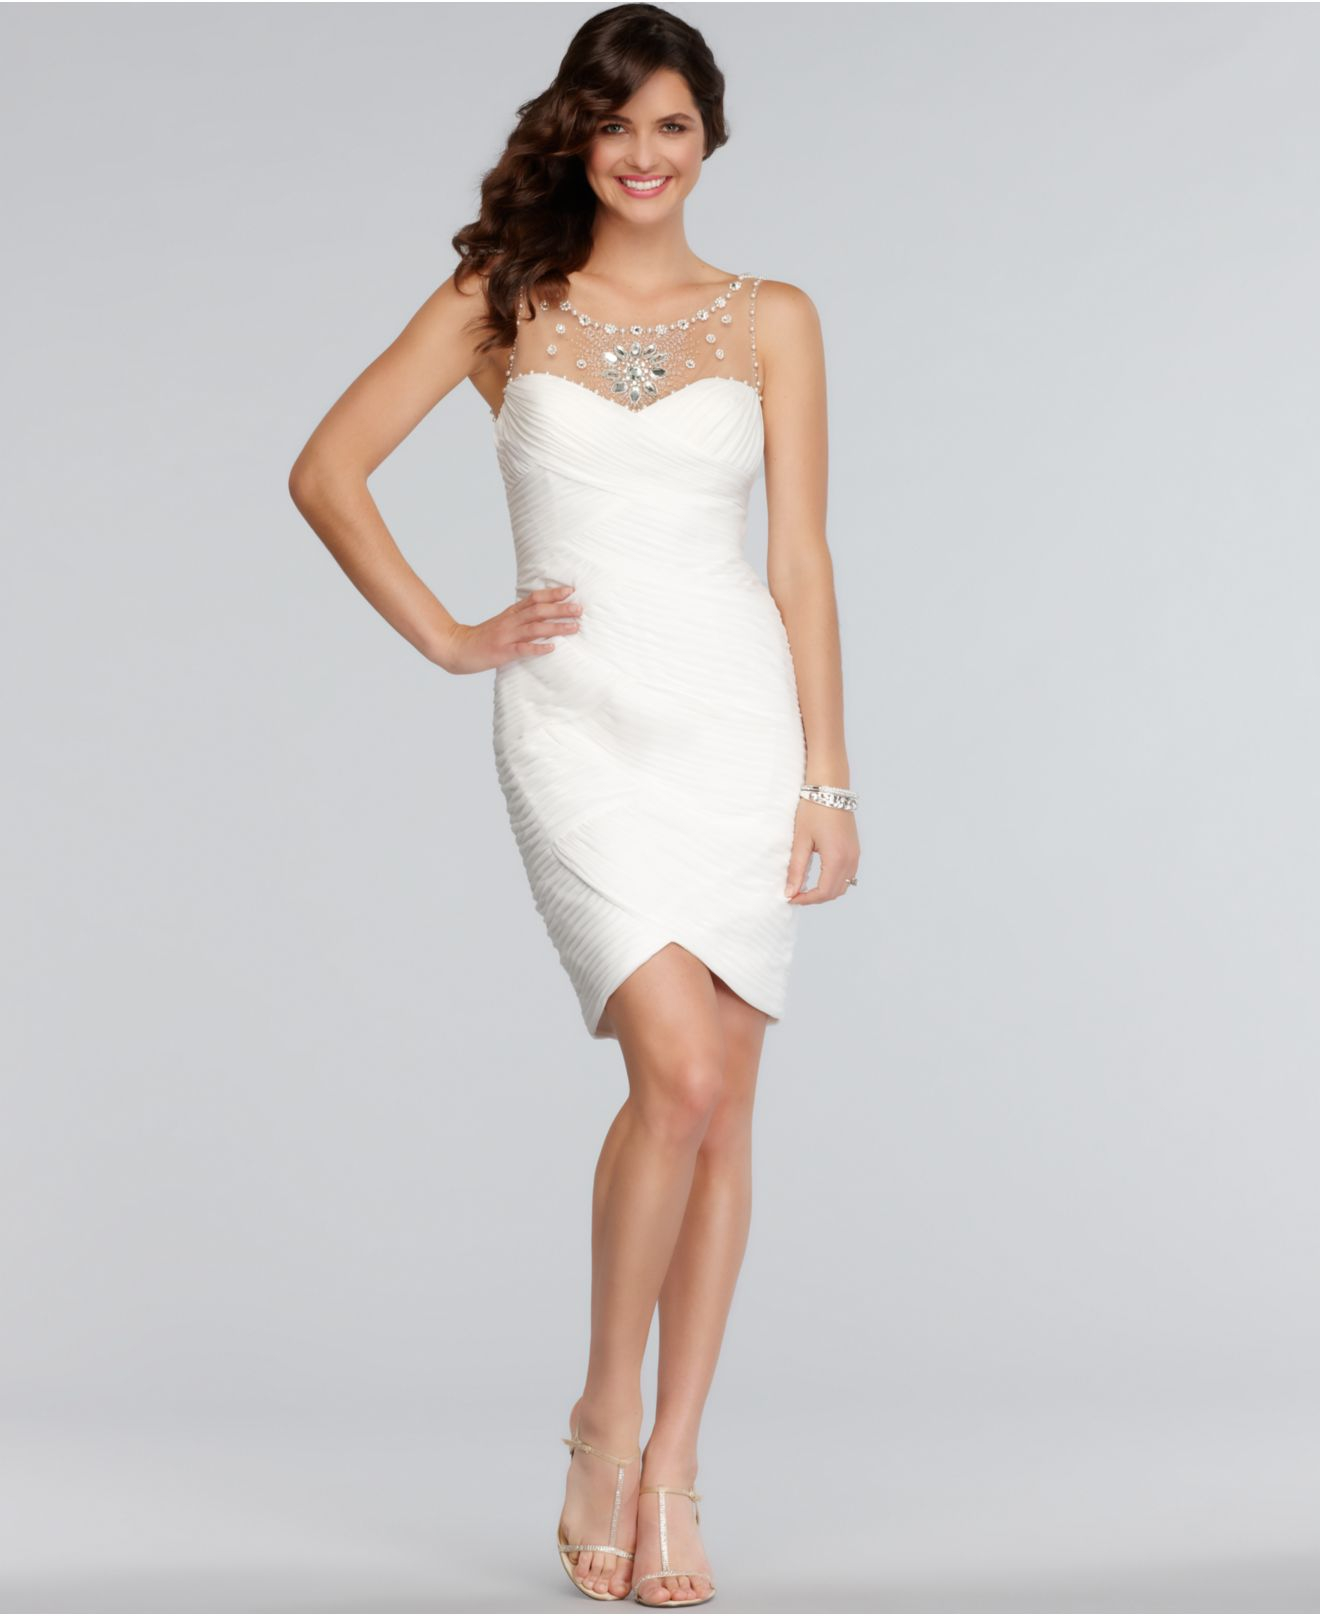 Adrianna Papell Cocktail Dresses | Dress images